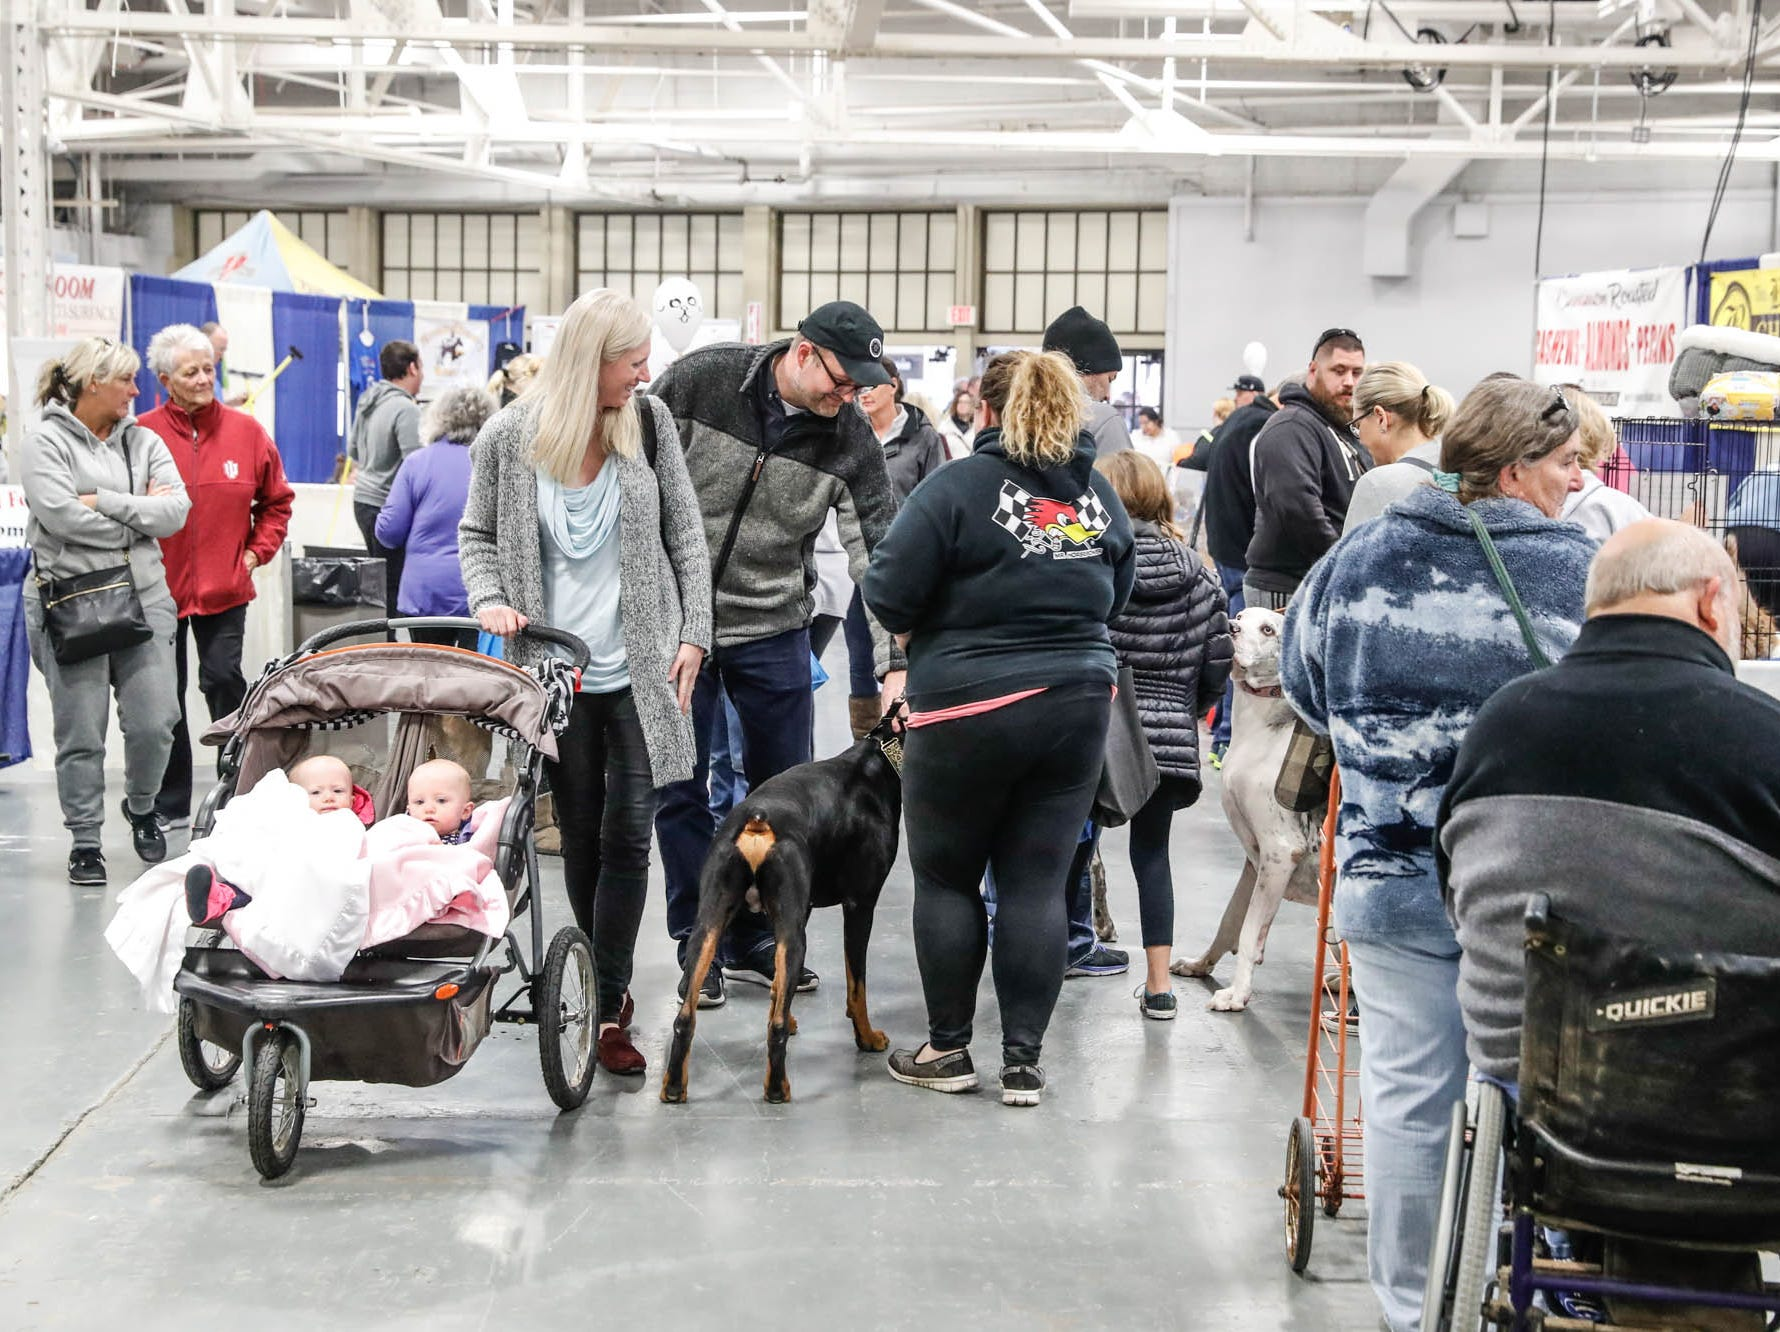 Guests bring their pets to the Great Indy Pet Expo, held at the Indiana State Fairgrounds on Sat. Nov. 10, 2018.